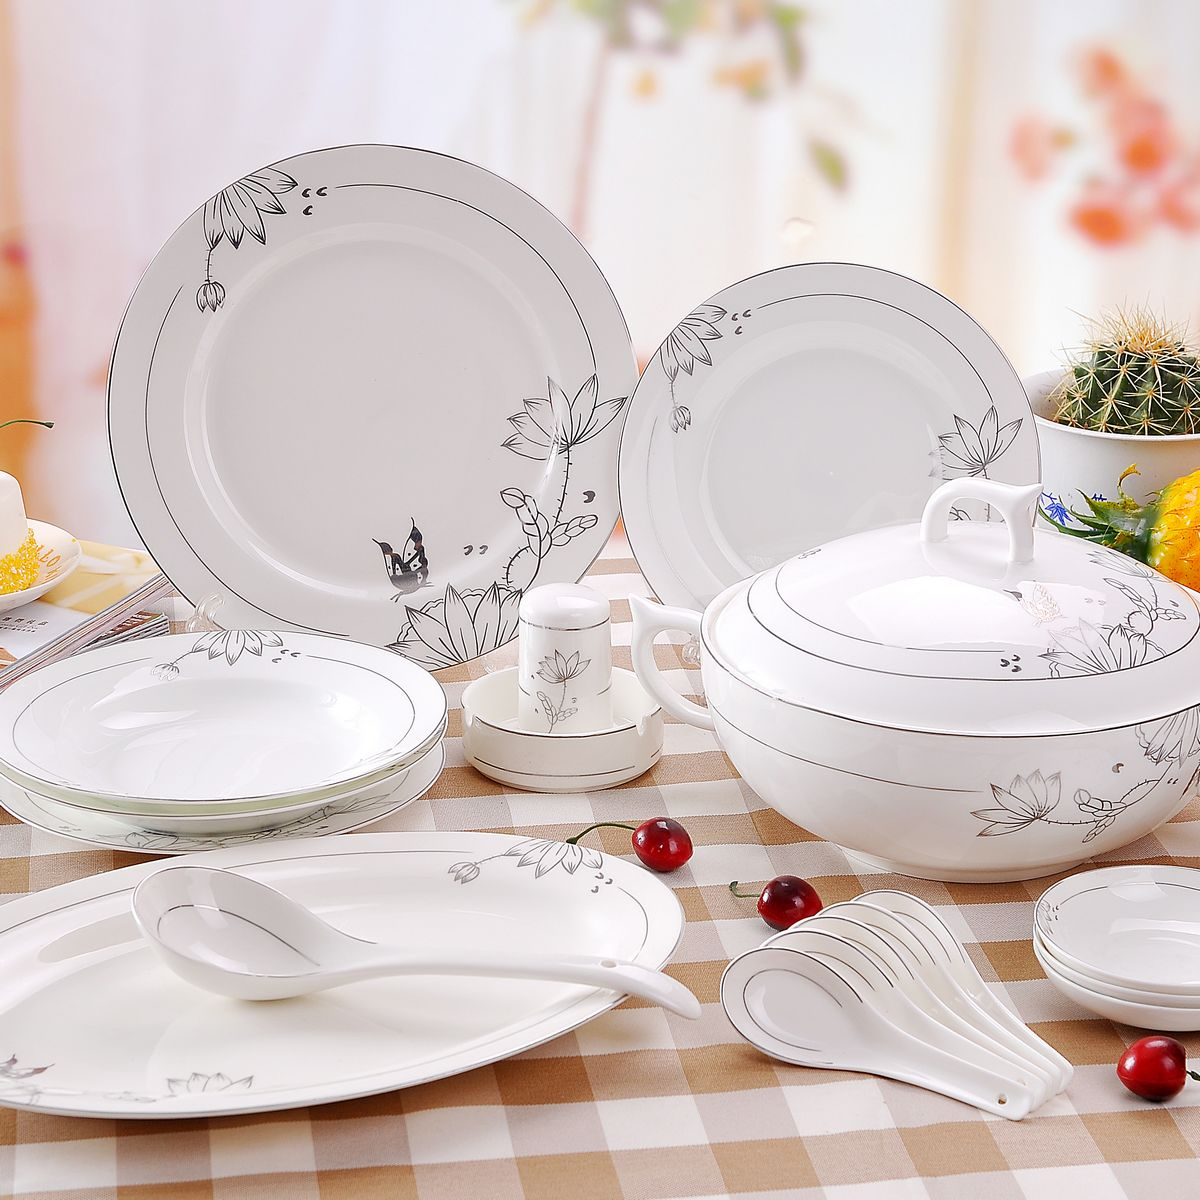 Wedding Gift Dinner Set : china dinnerware set fashion the plate ceramics bowl wedding gifts ...